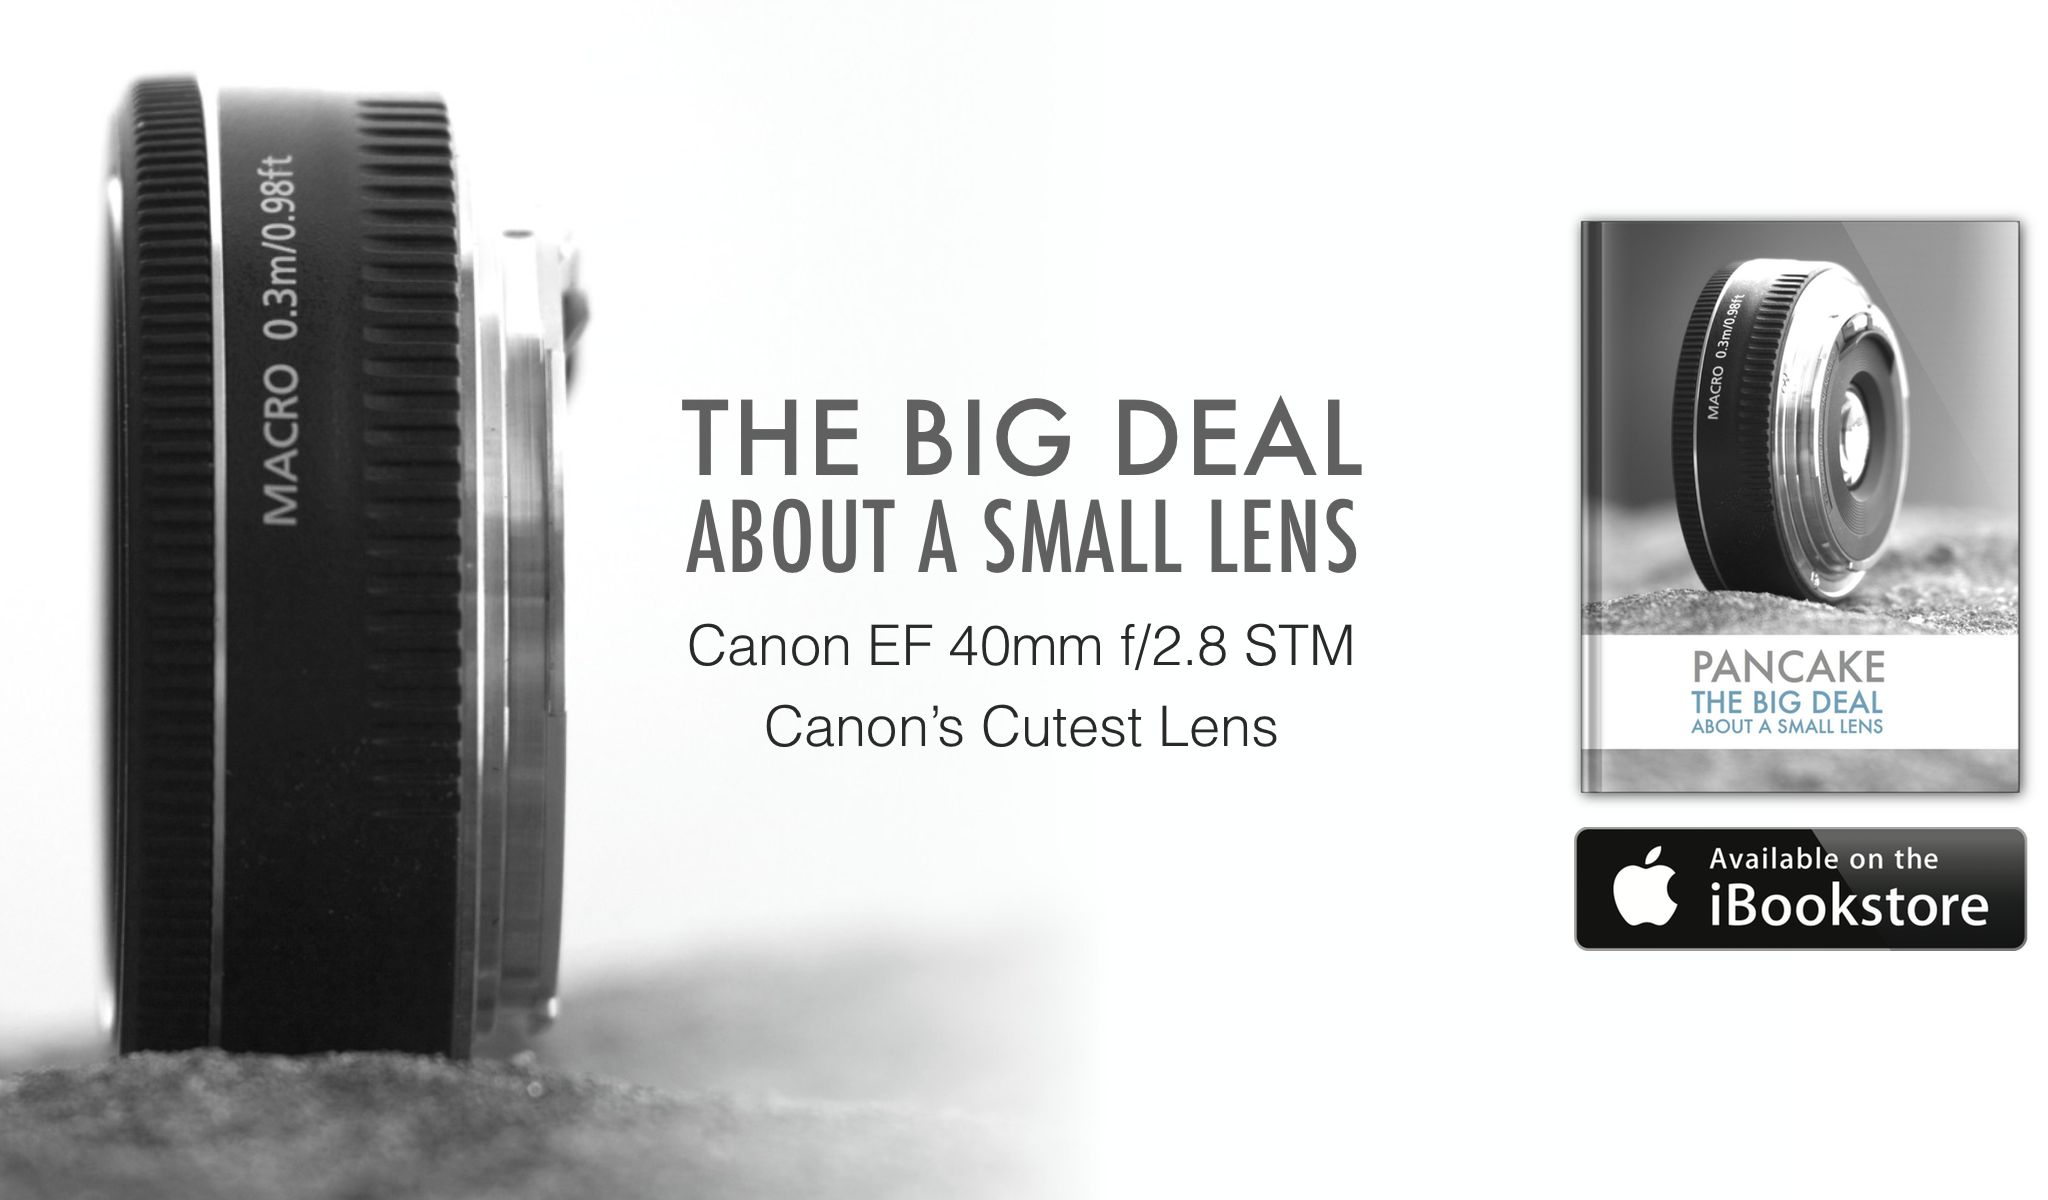 Pancake - Canon EF 40mm f/2.8 STM, Canon's Cutest Lens - Banner Ad - Detailed - COMPRESSED